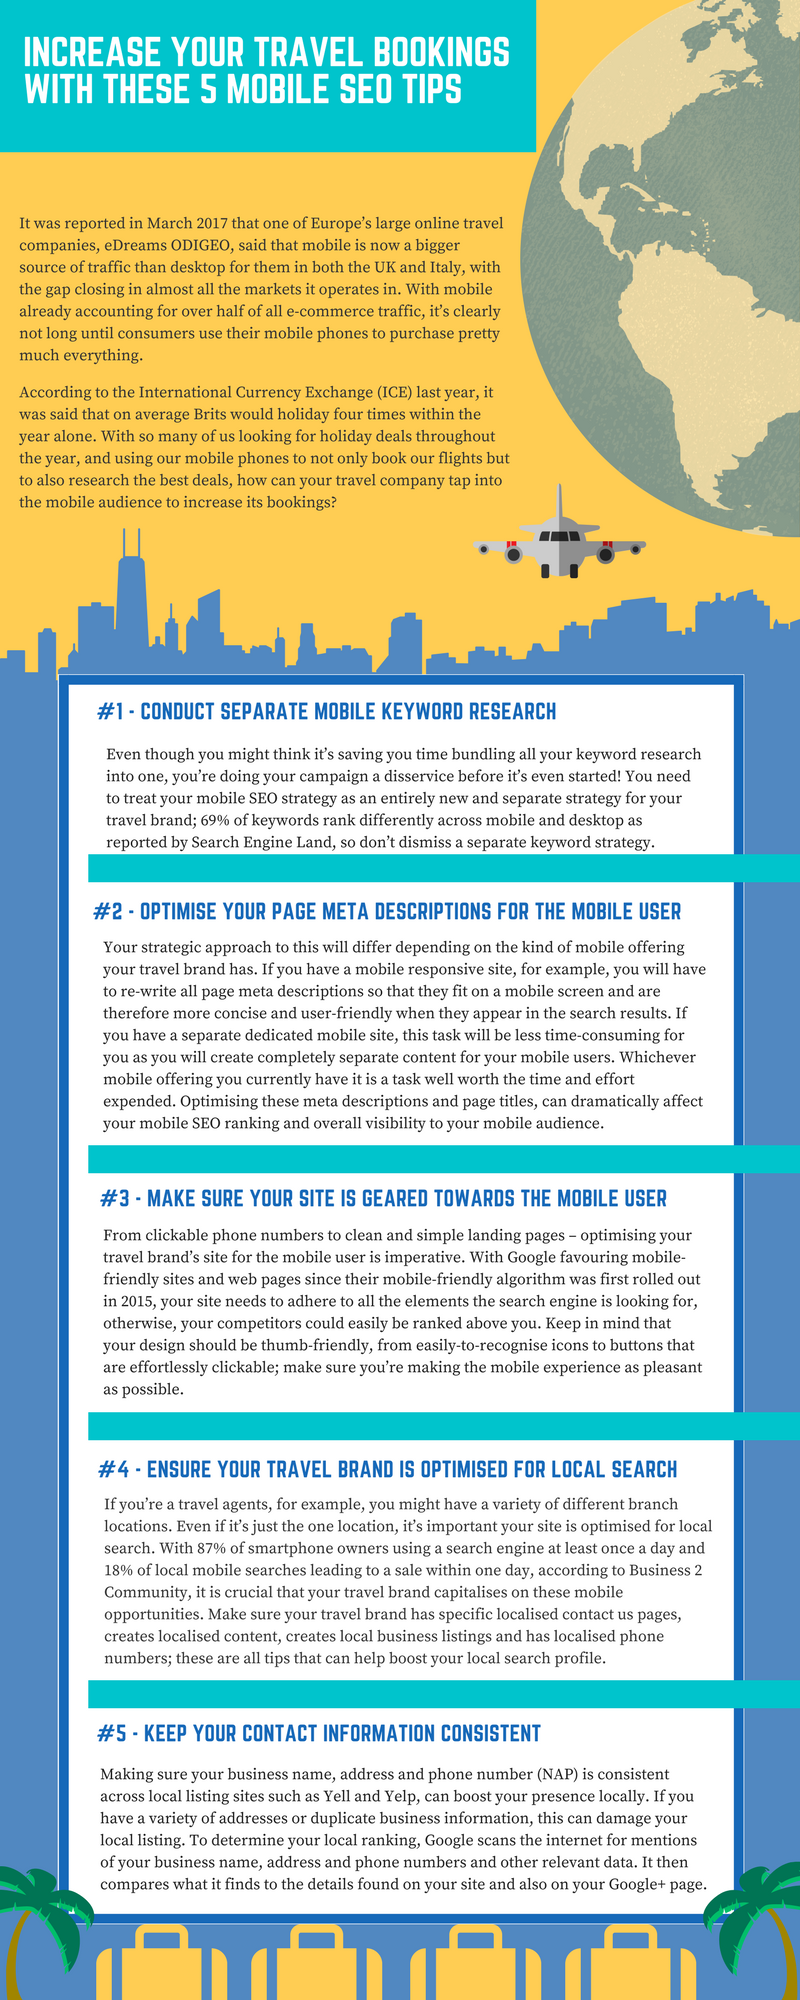 Travel sector: Mobile SEO Tips